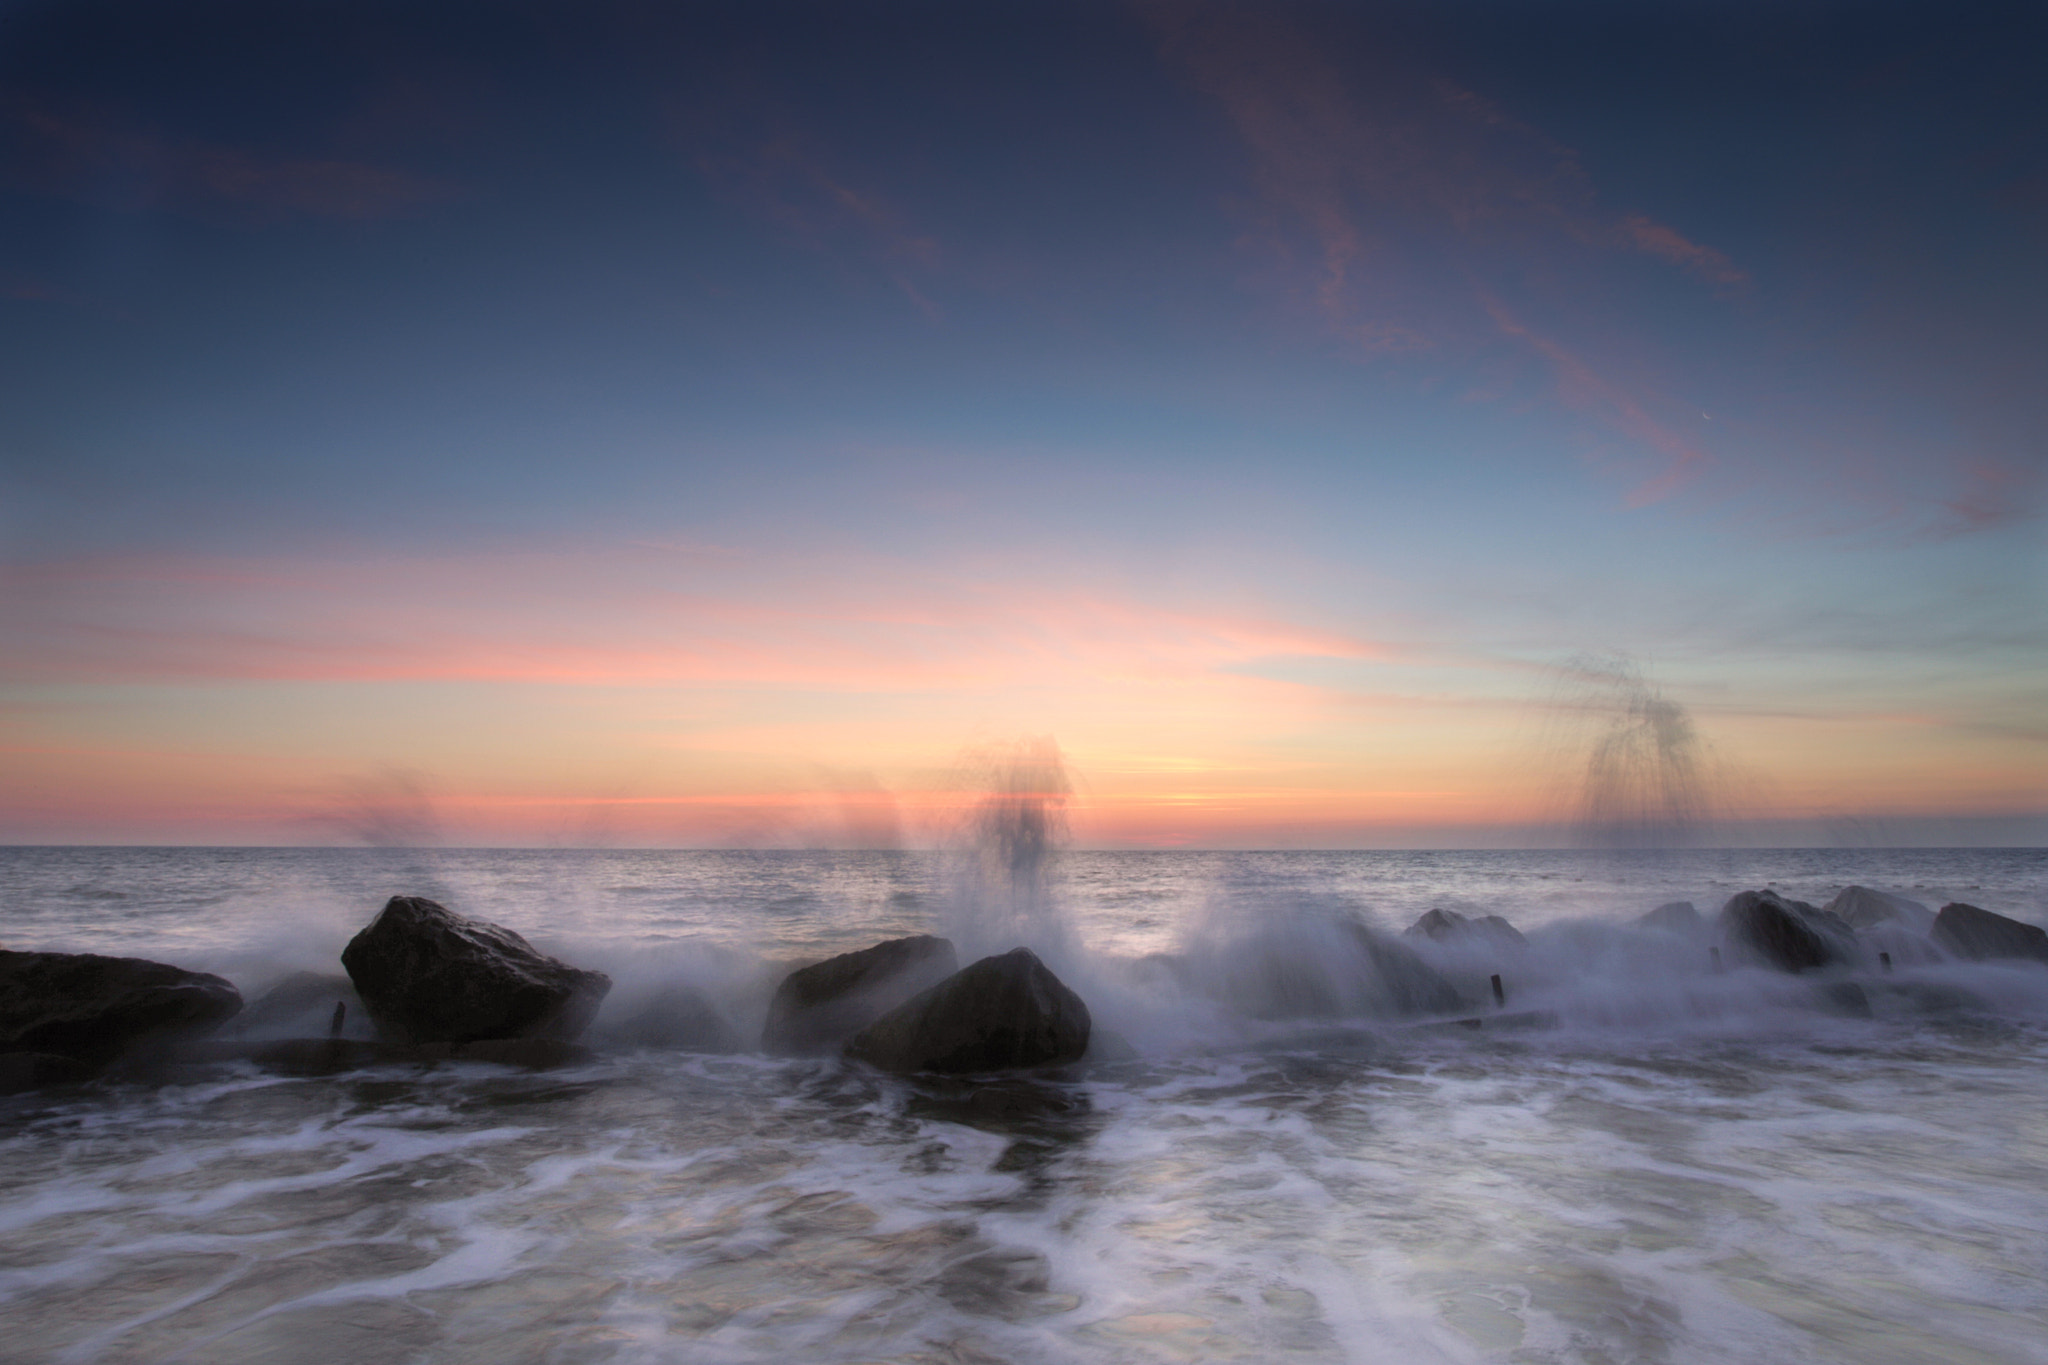 Photograph Dances with Waves by Simon Wrigglesworth on 500px